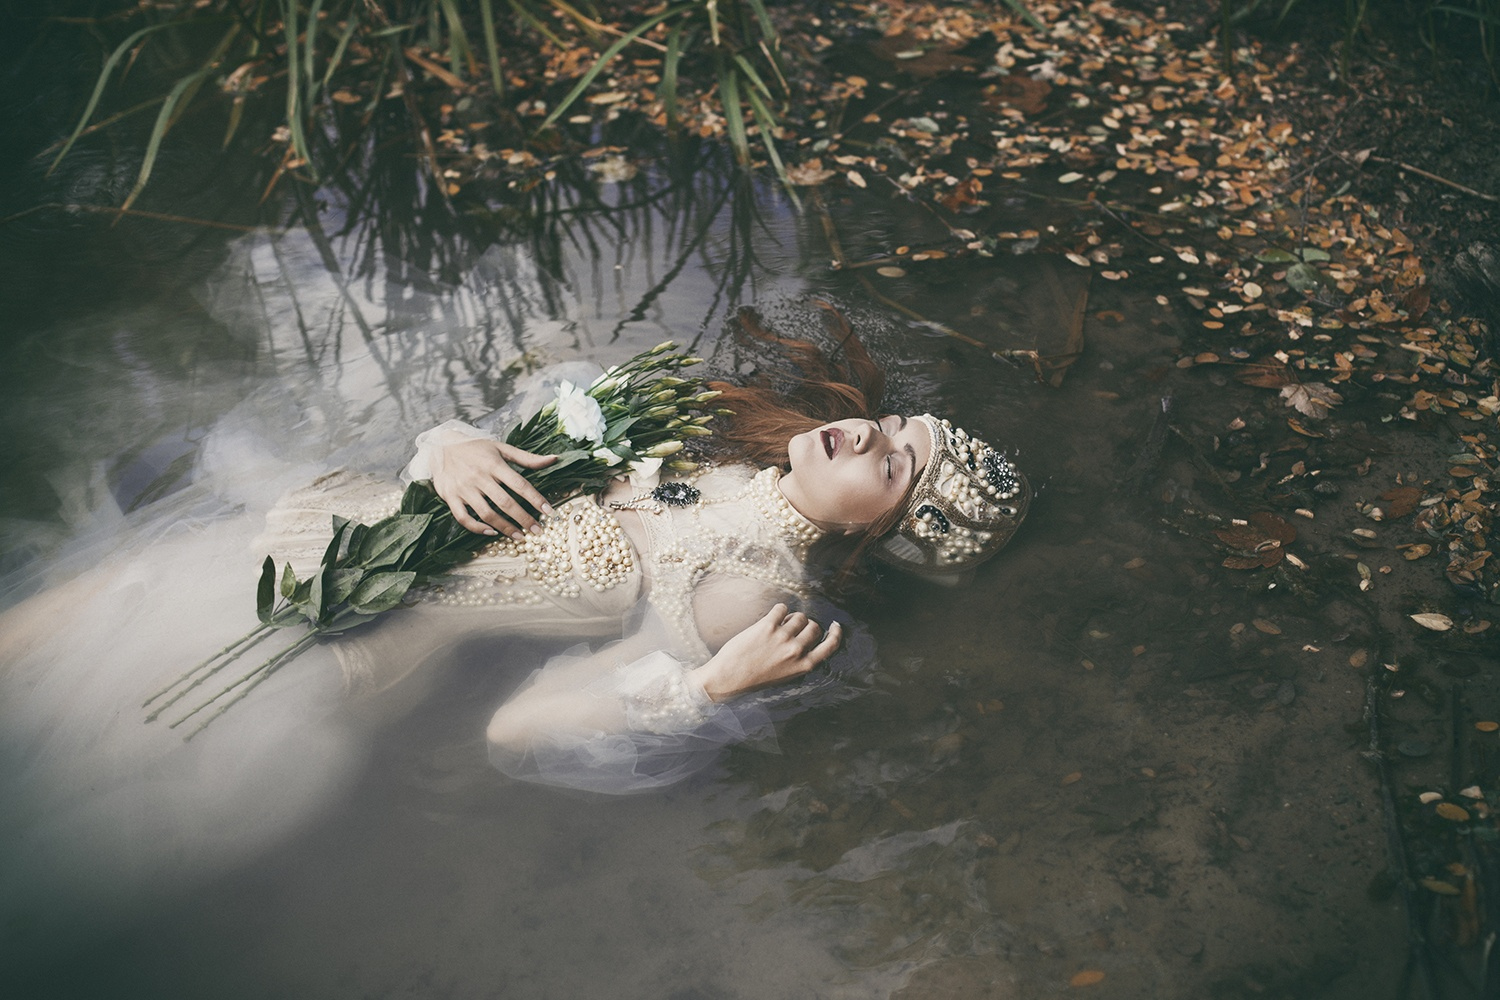 dorota gorecka dreamy photography ophelia water model flowers